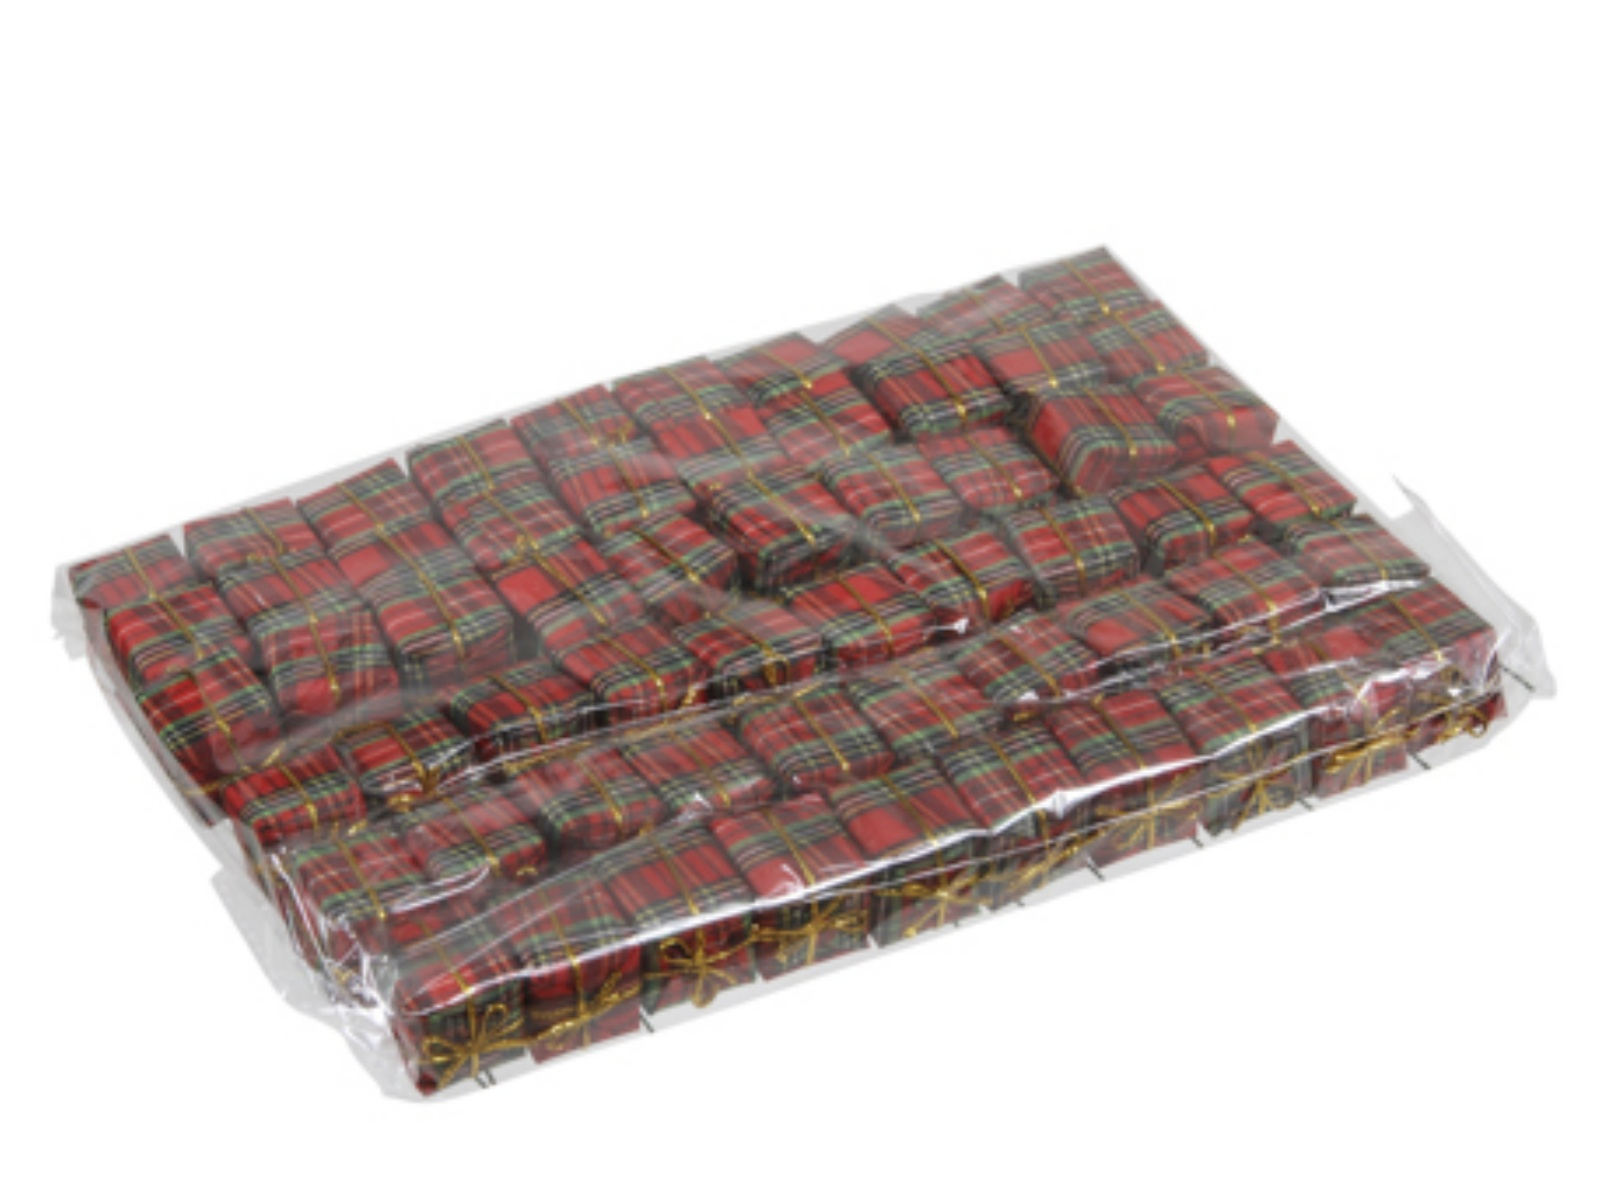 X213X4 Package of 60 red scotish design gifts on stick width 25cm H25cm